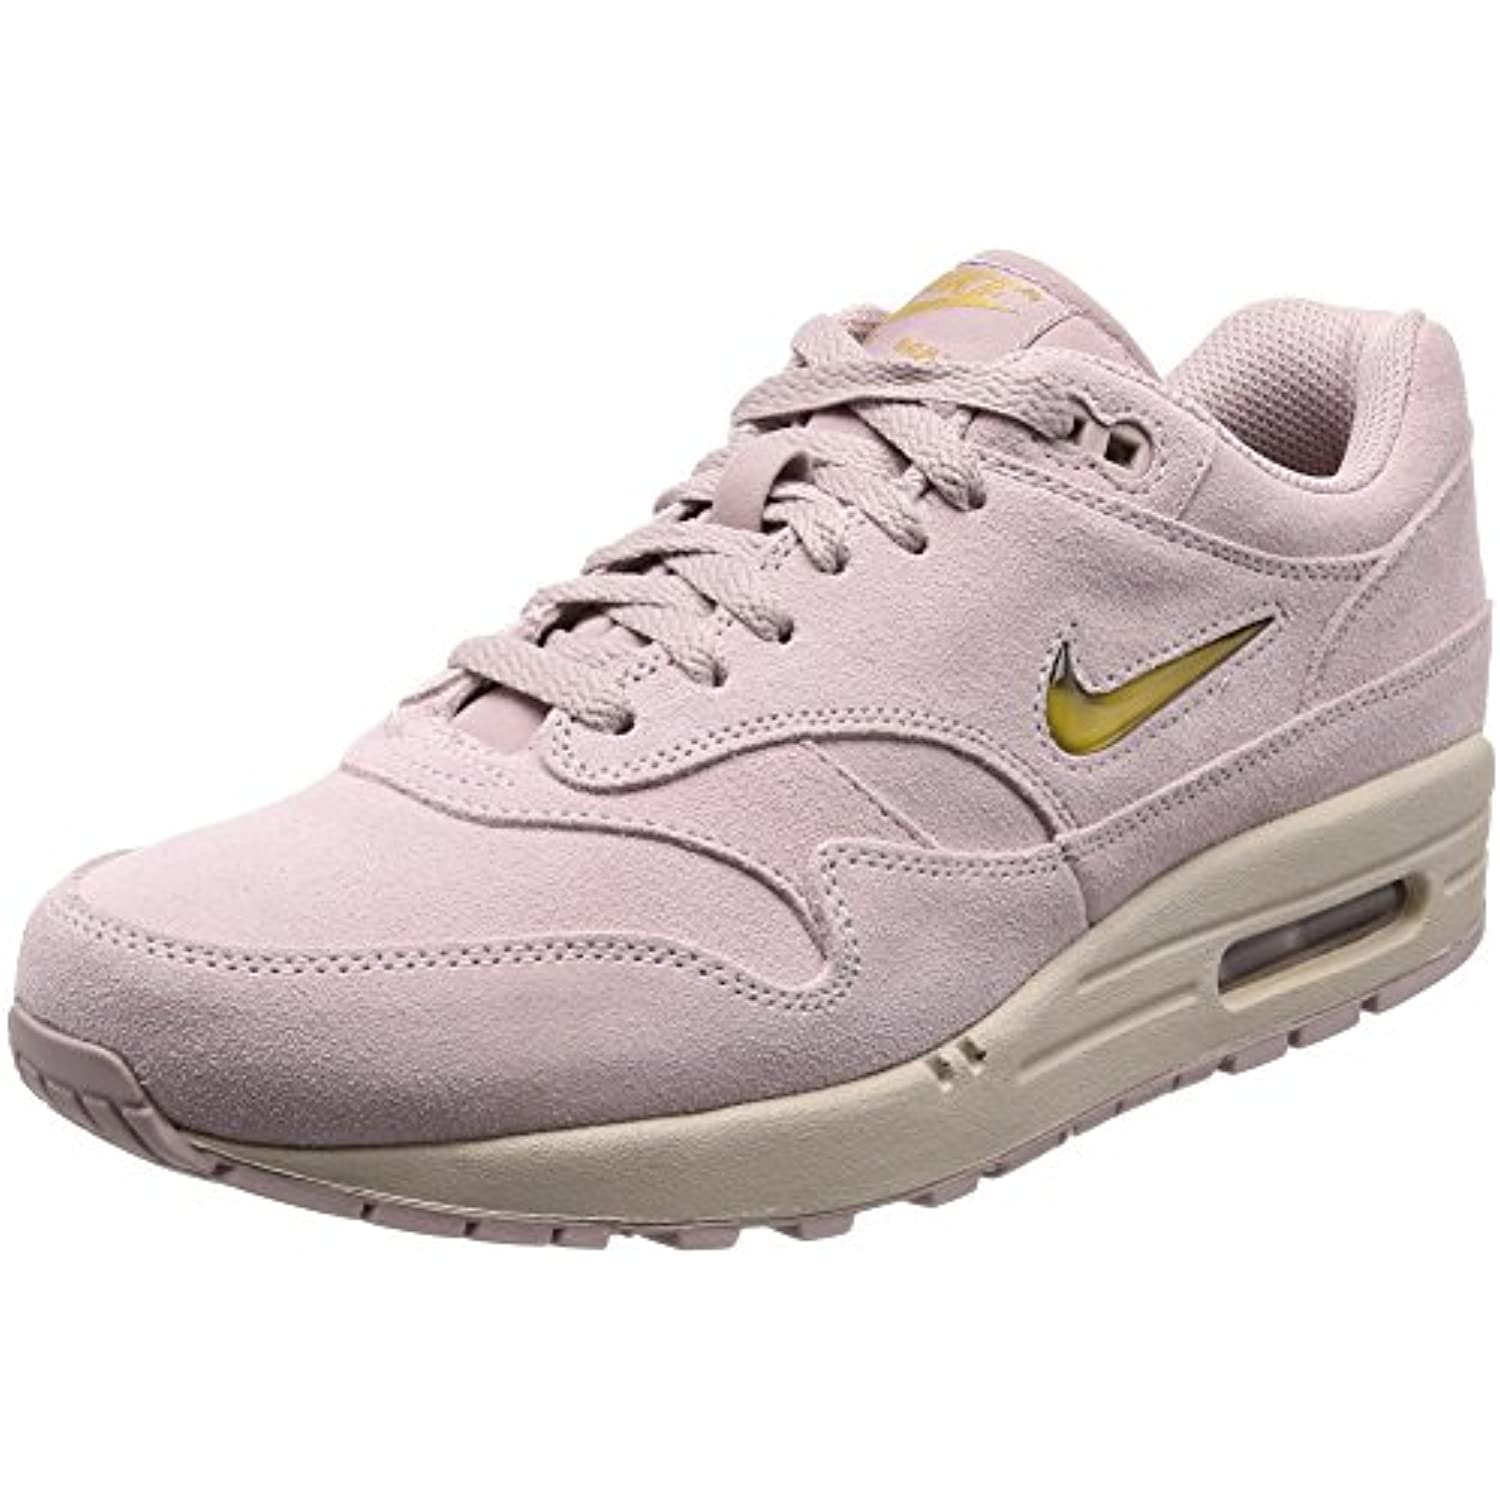 official photos 20e3f e9477 NIKE Air Max 1 Premium SC, Chaussures de Gymnastique Gymnastique  Gymnastique Homme B011ITLV2M - 276037